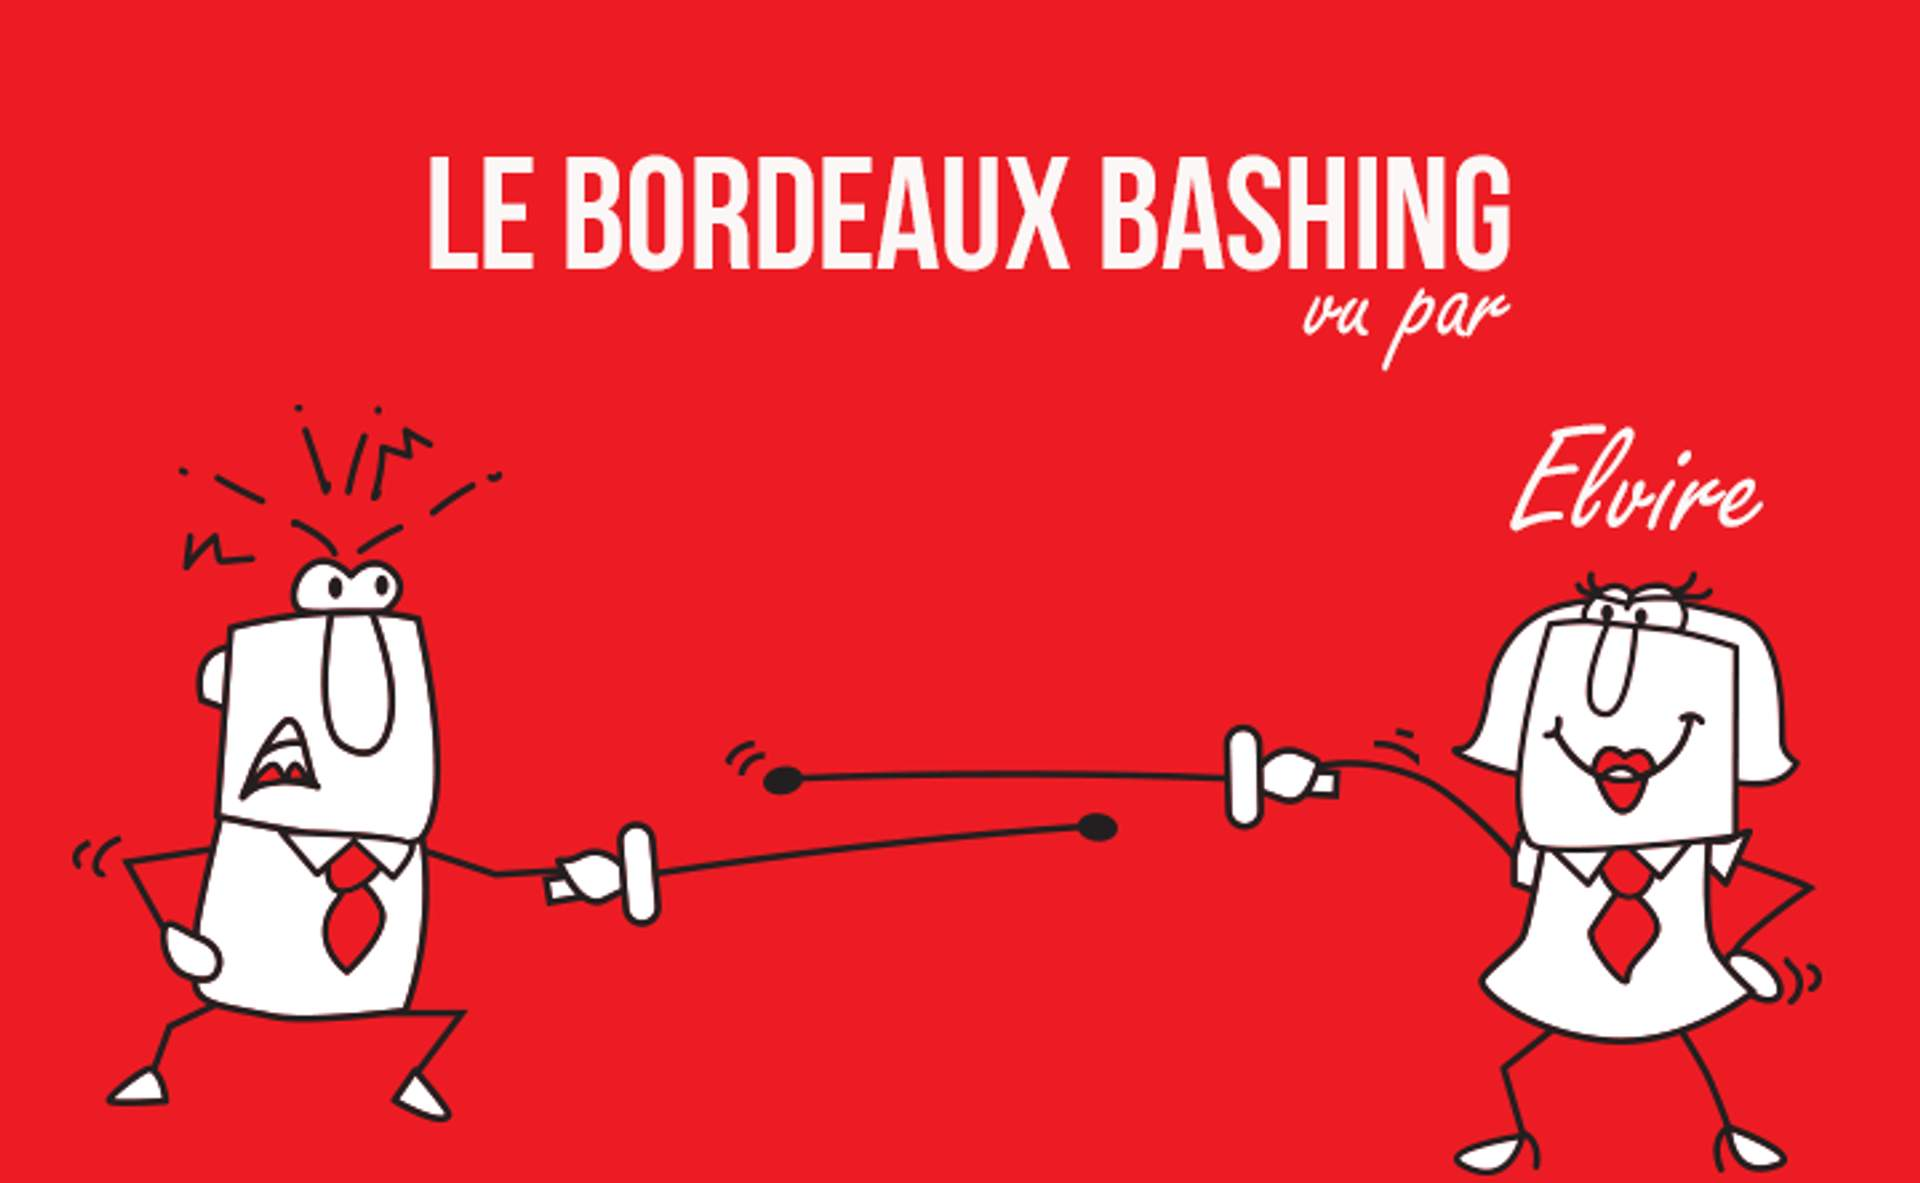 Le Bordeaux Bashing par Elvire Bonnefous